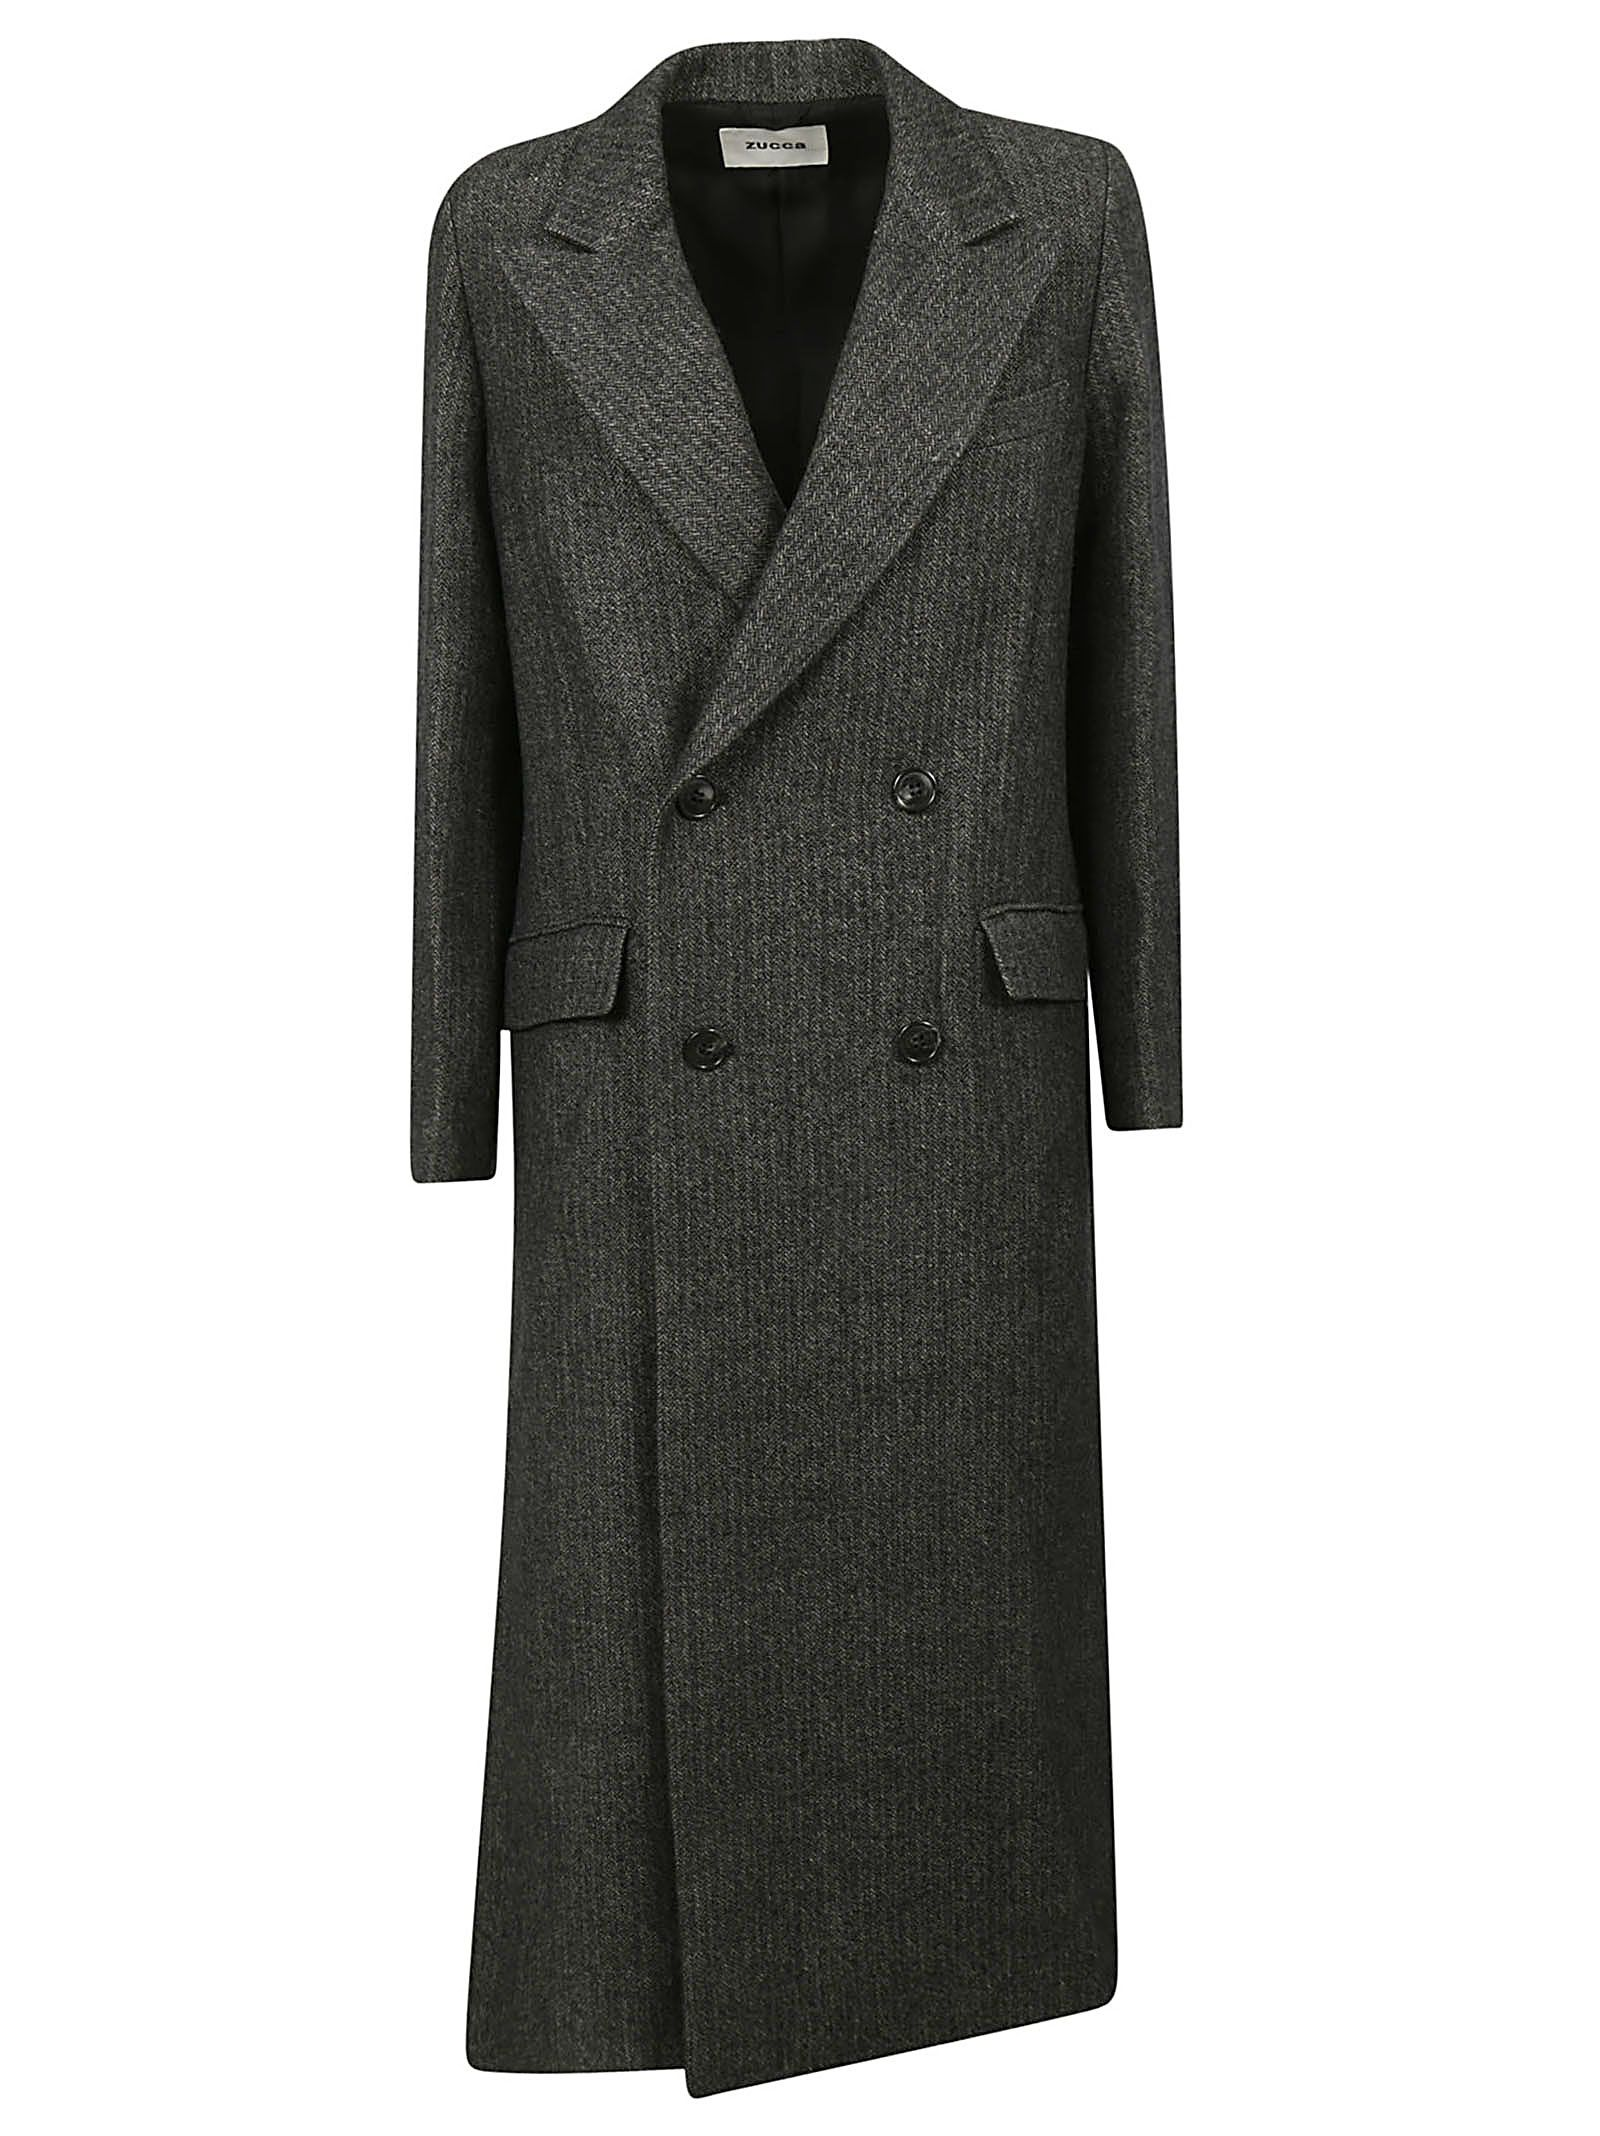 ZUCCA Double Breasted Coat in Grey